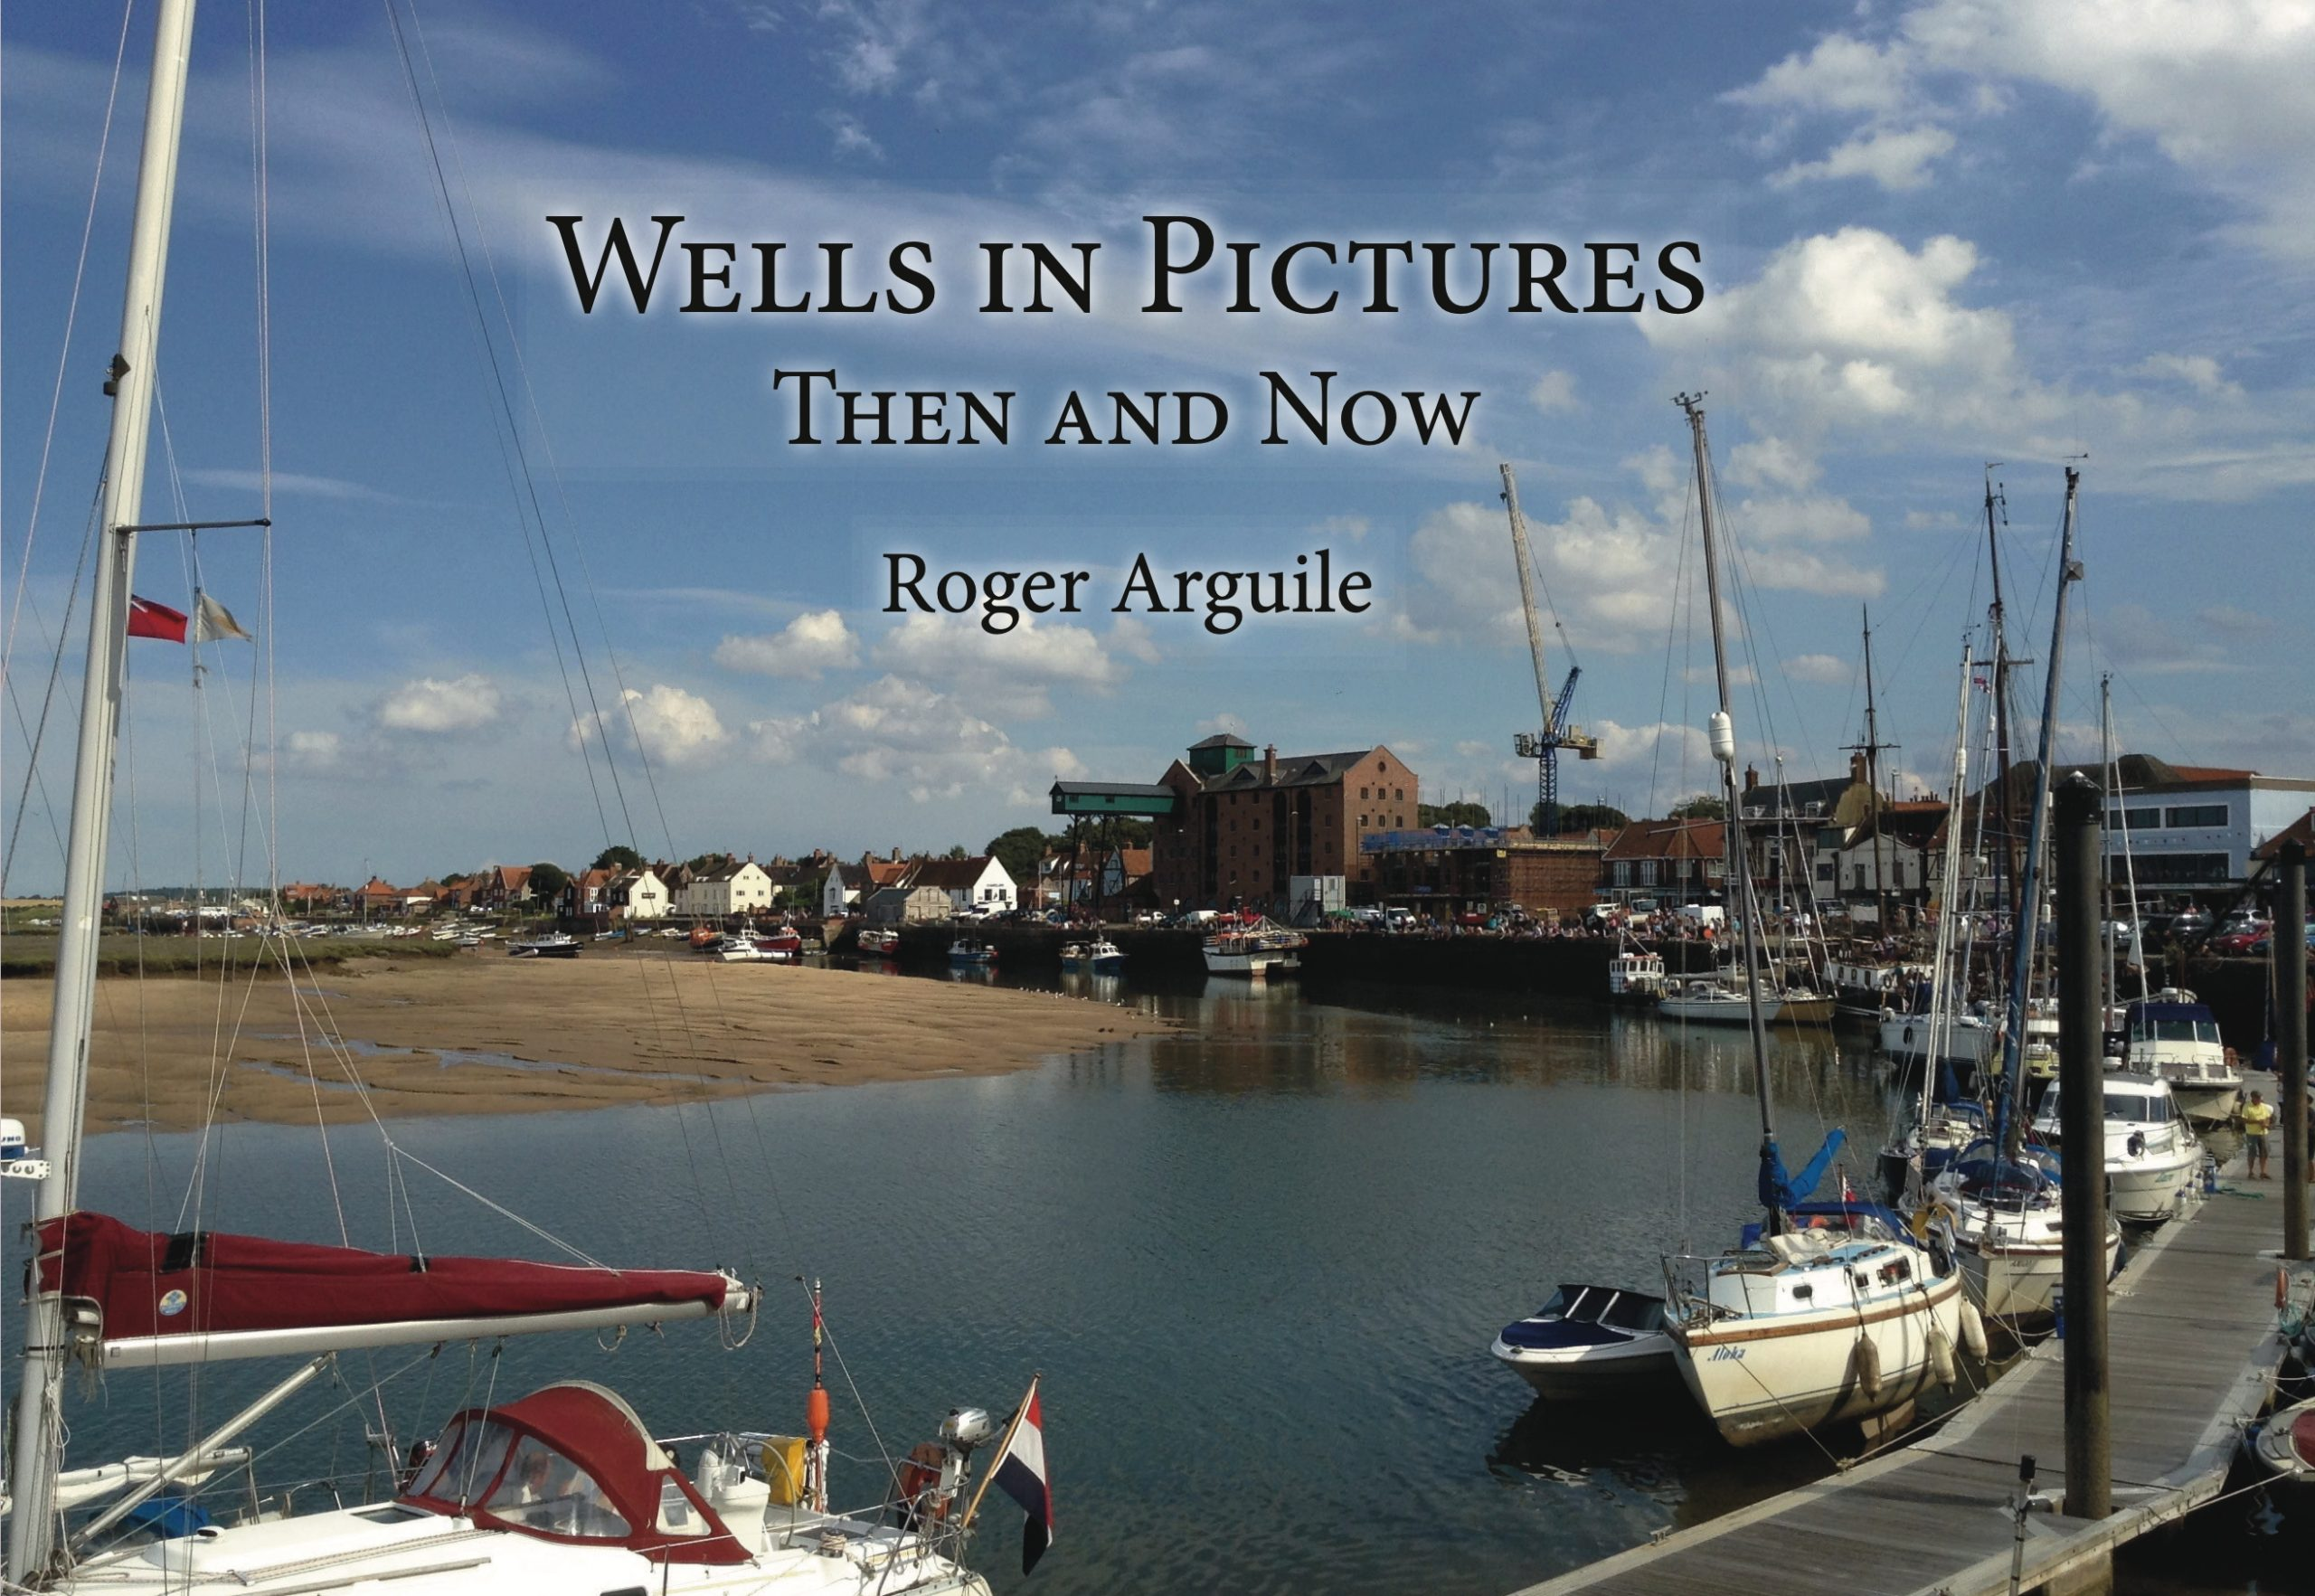 Wells in Pictures